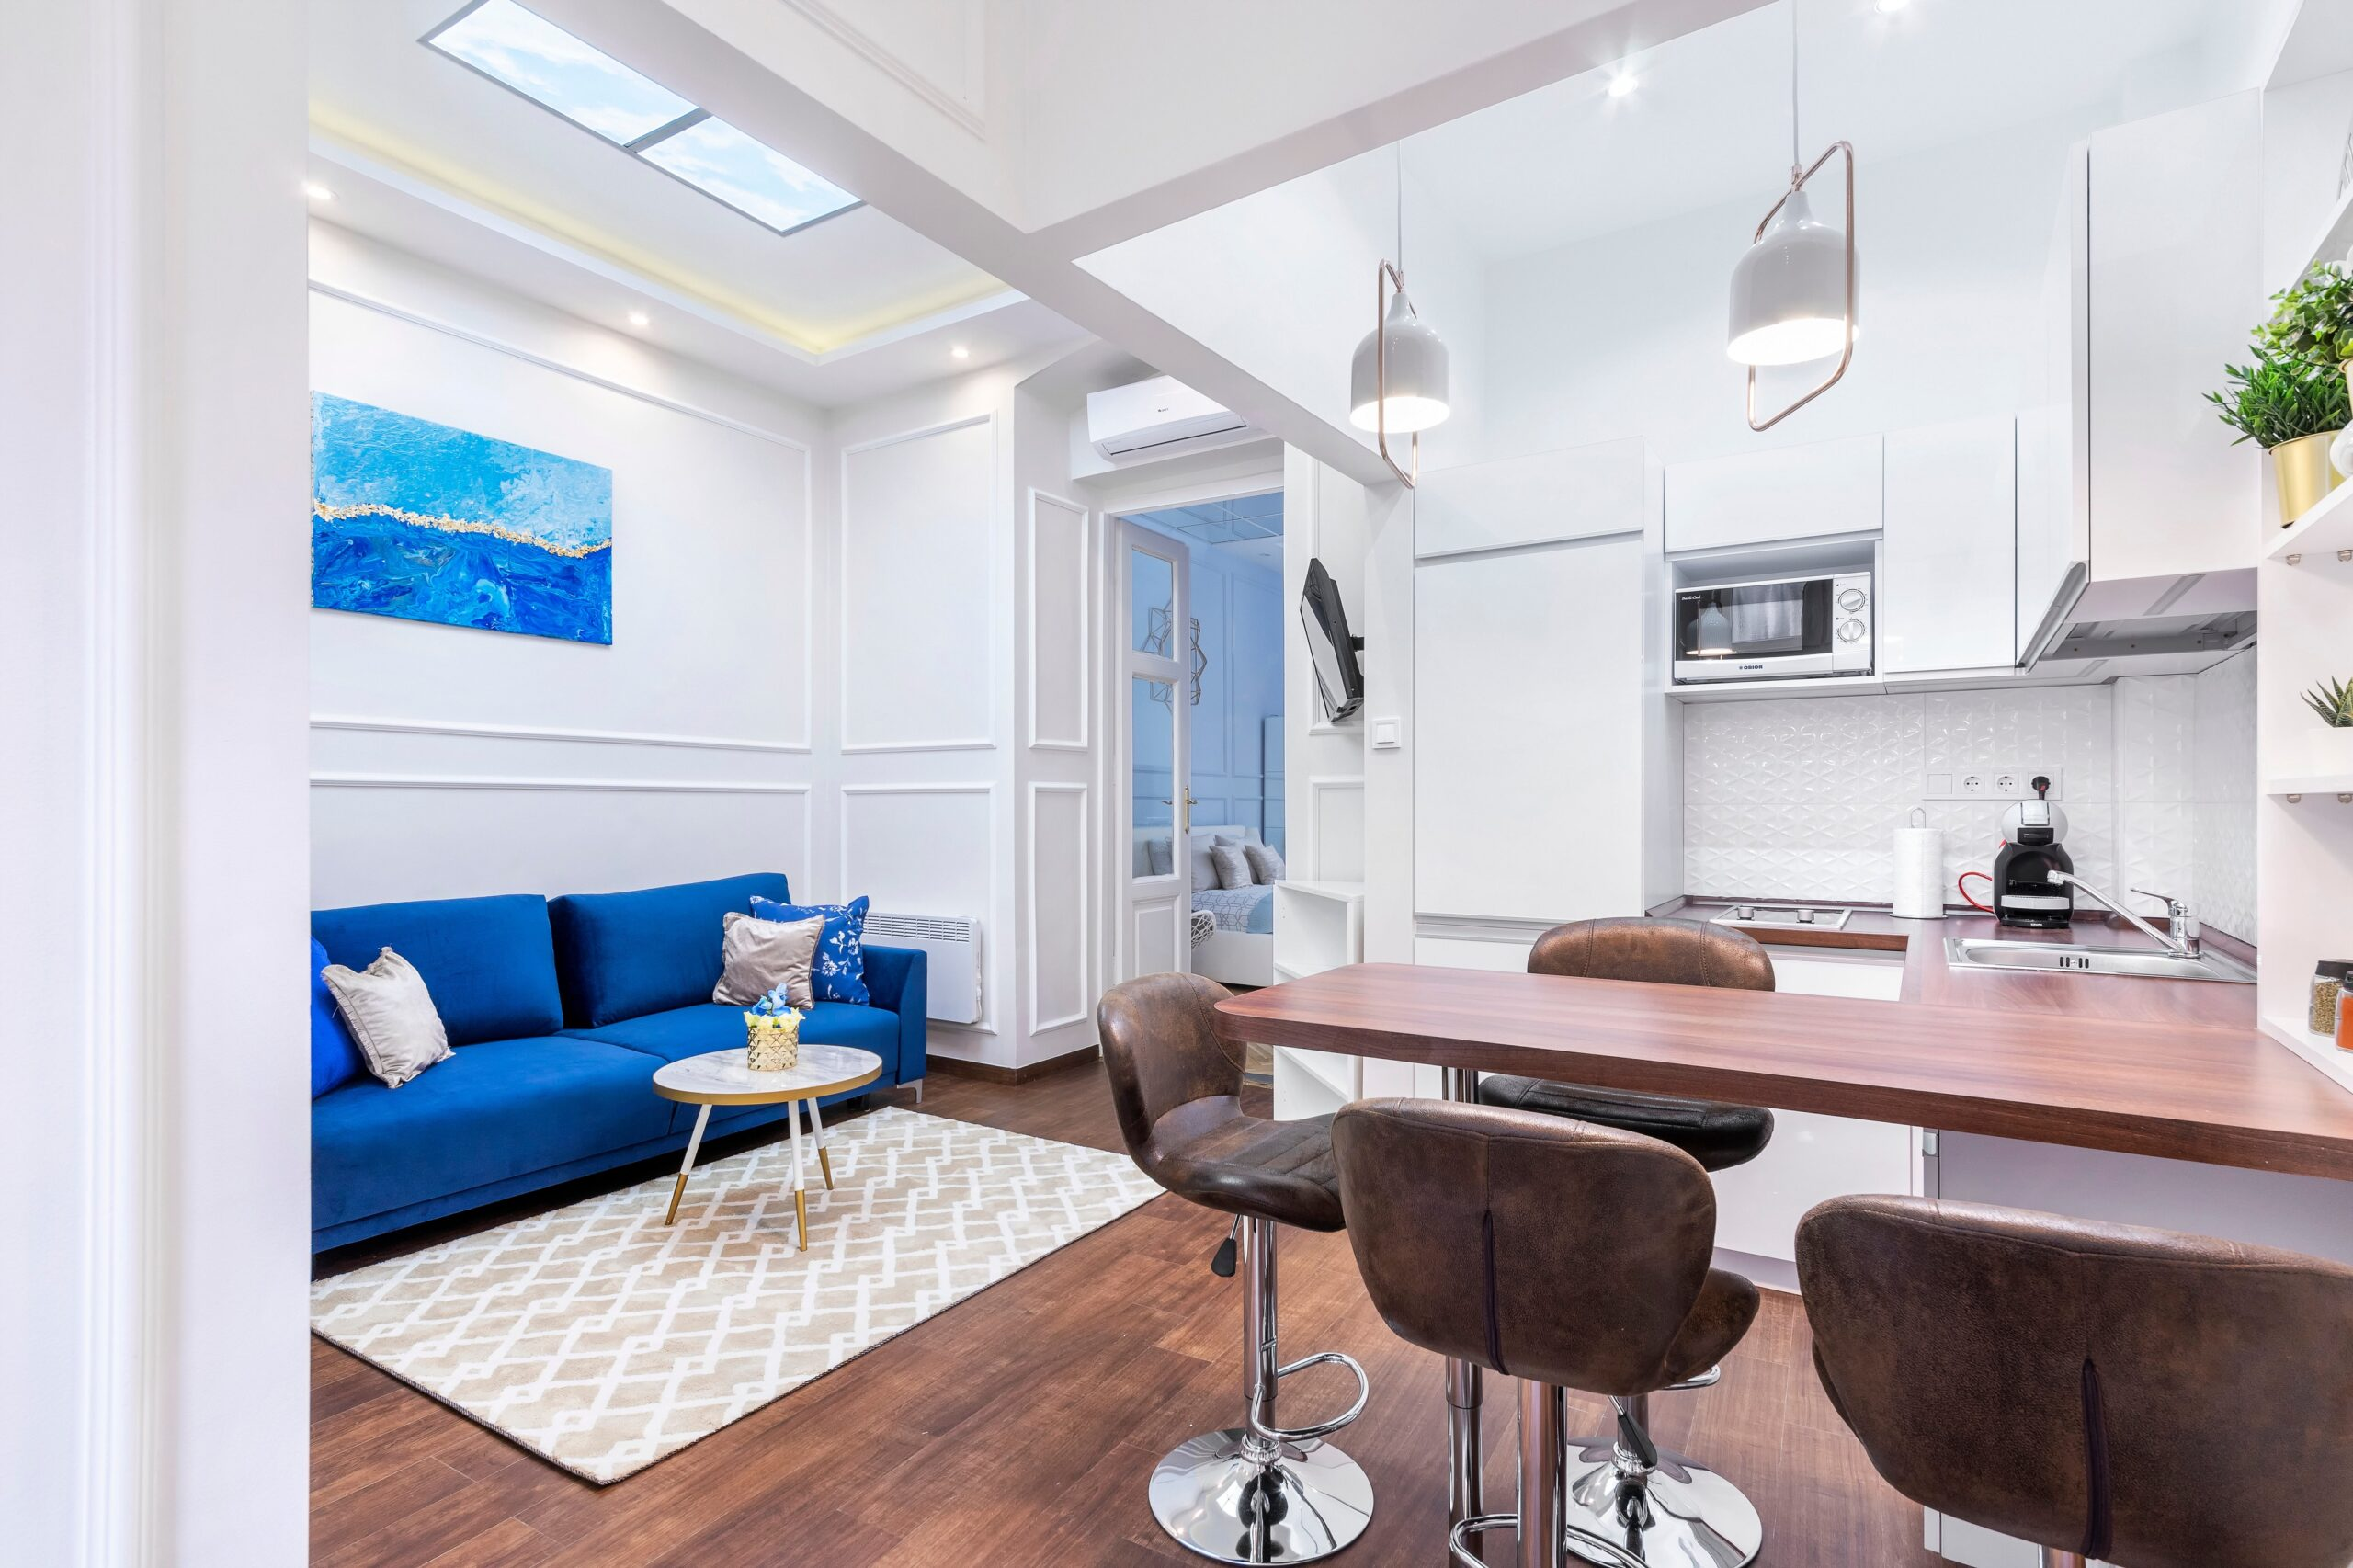 How to sublet your rental property